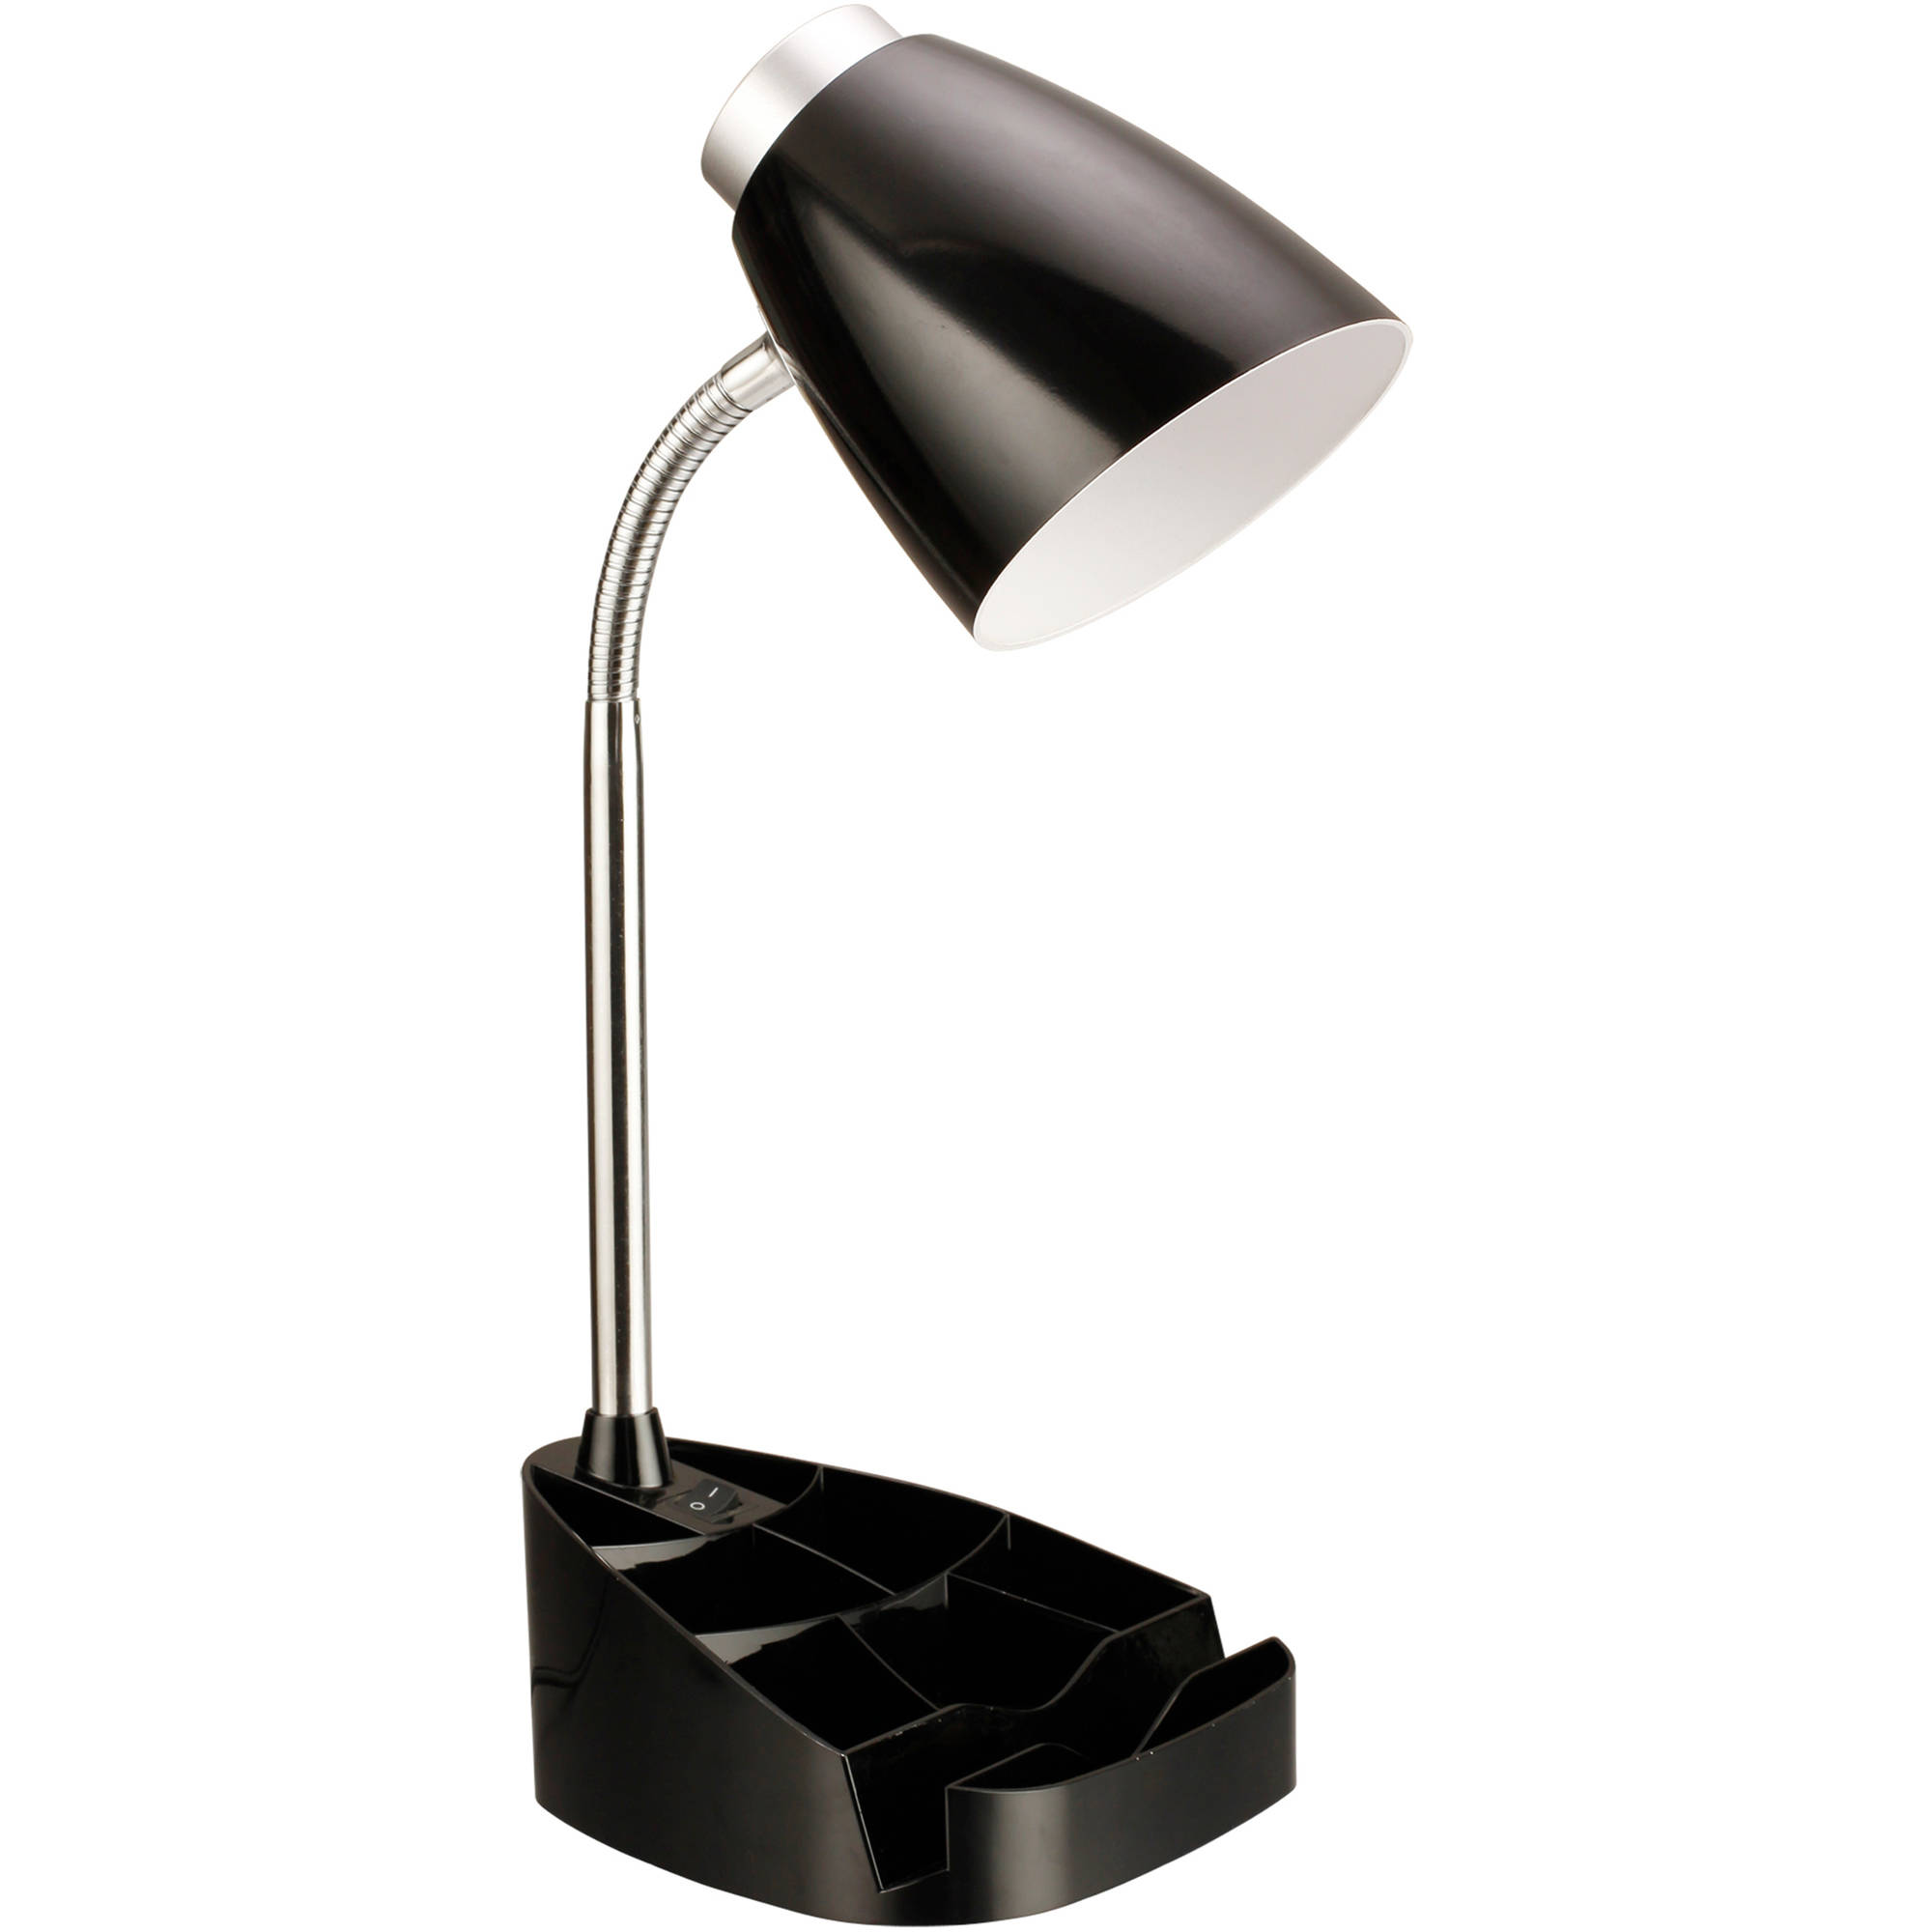 Limelights Gooseneck Organizer Desk Lamp With Book Holder